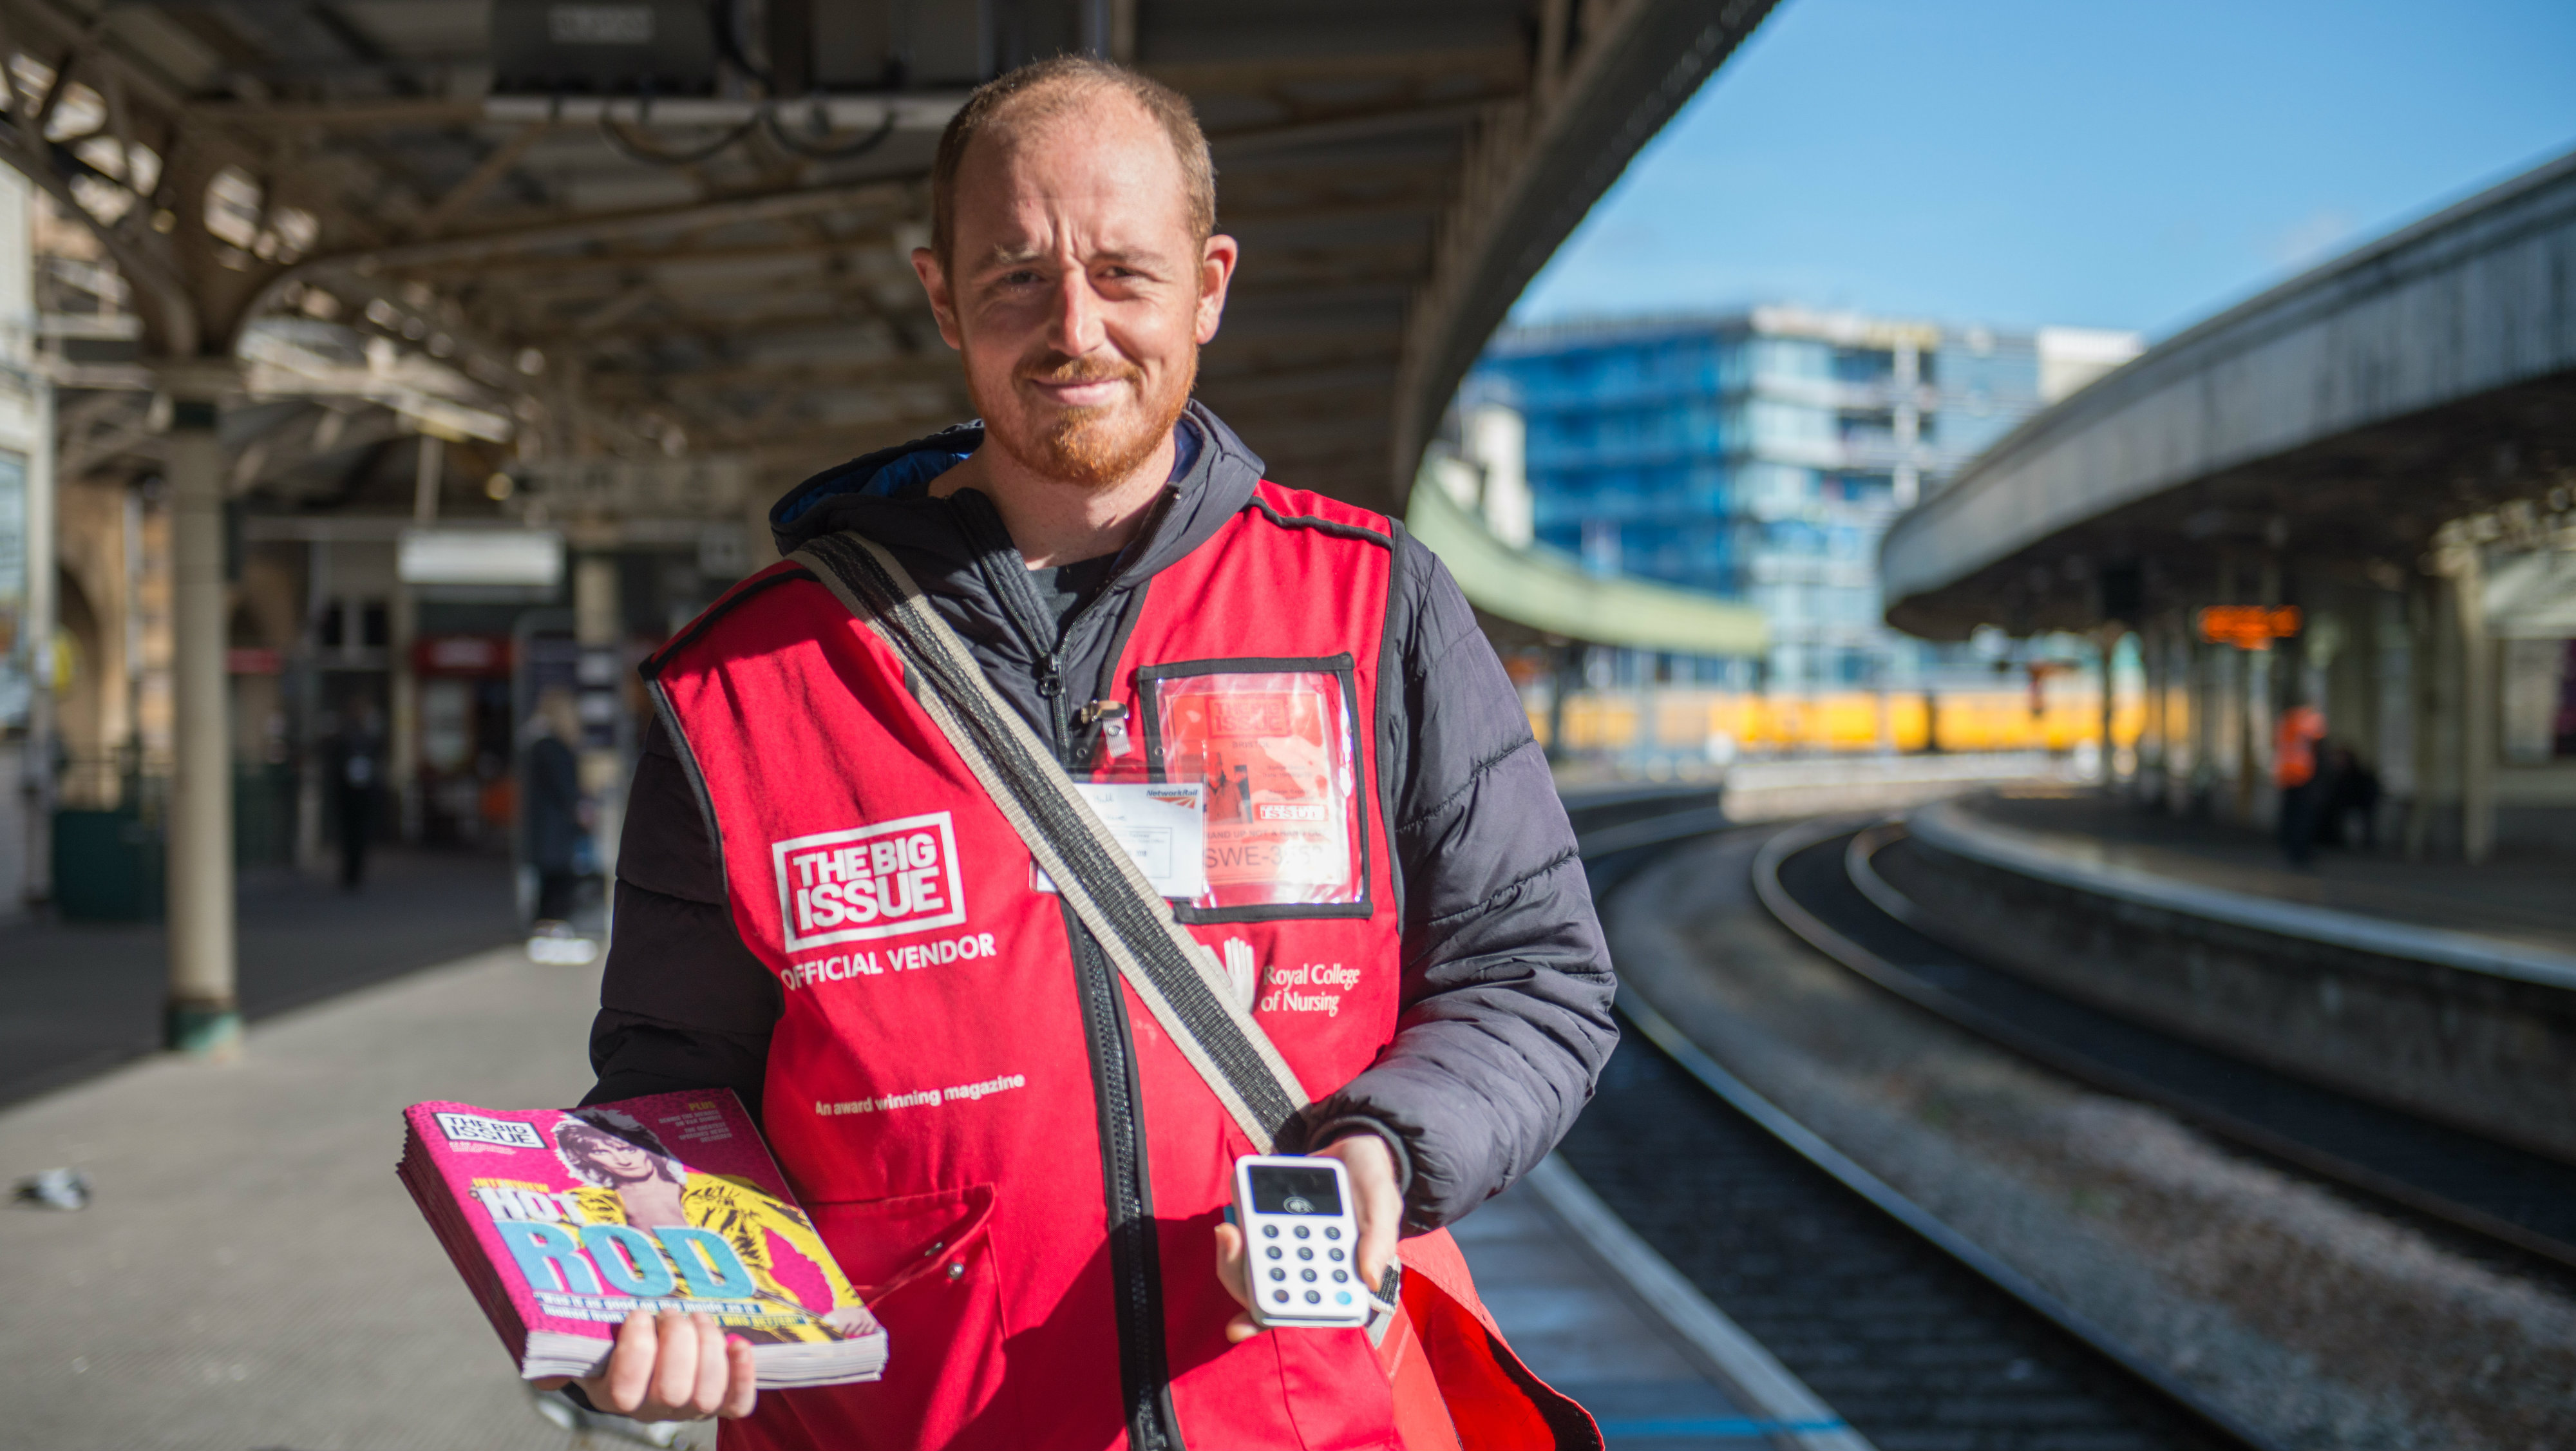 Big Issue magazine vendor Mike Hall.